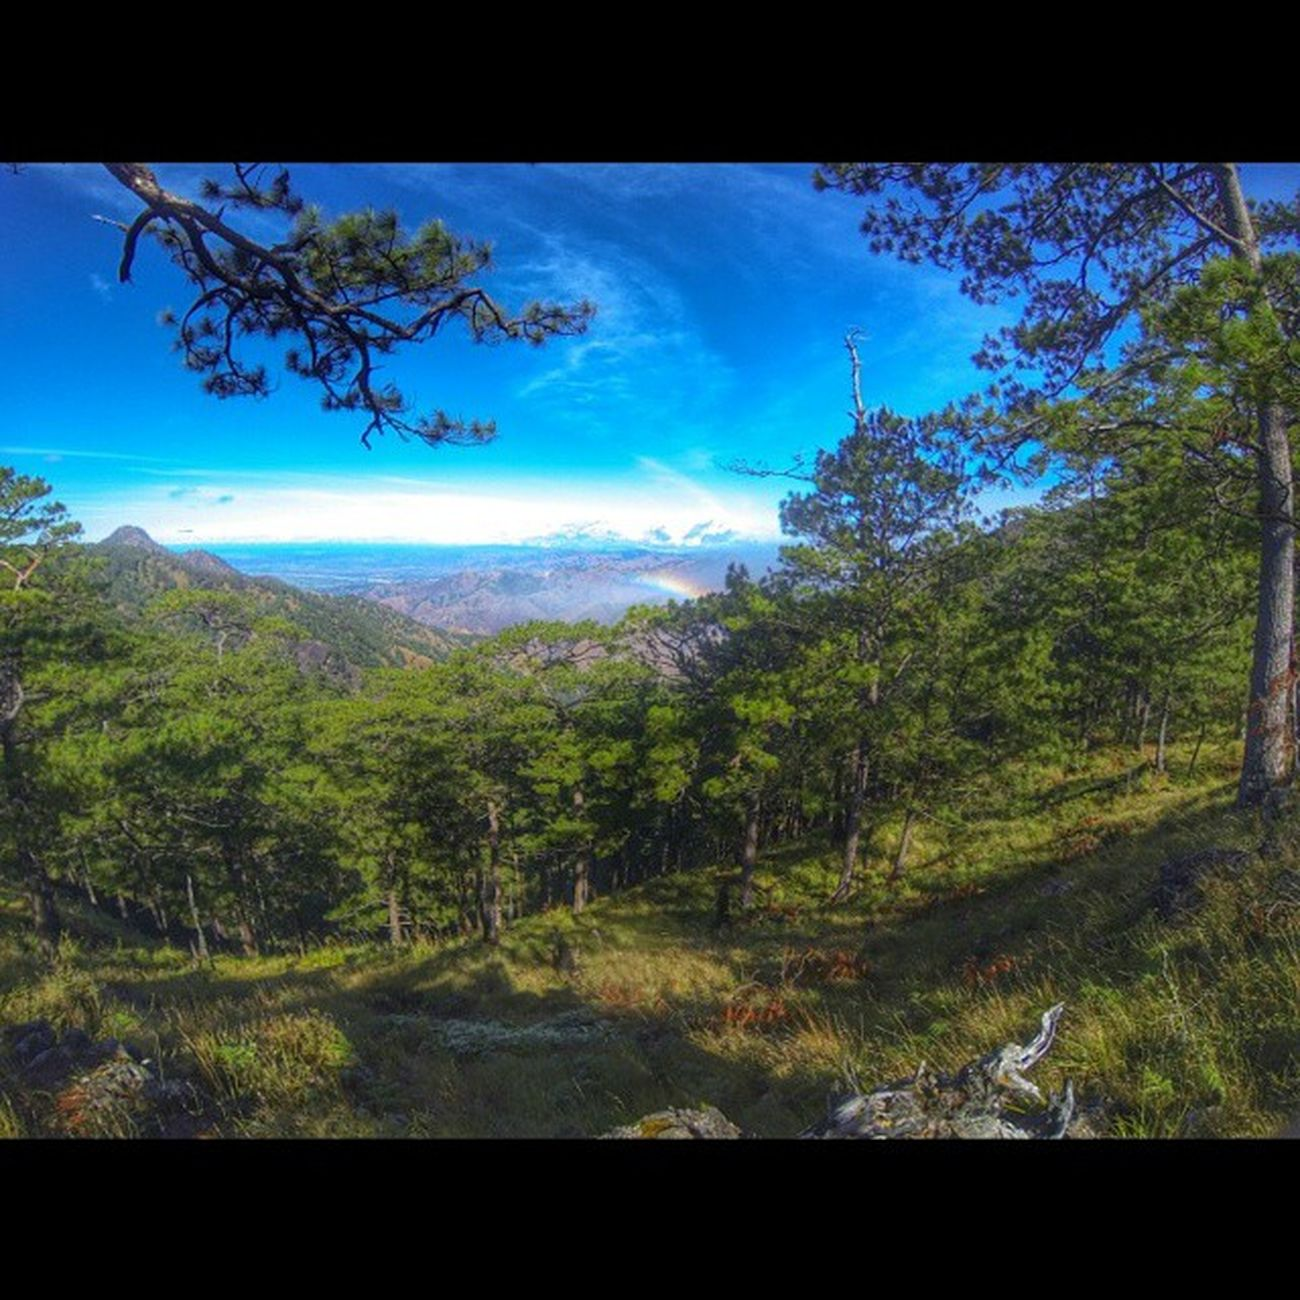 View from trail to Pakpako campsite on the way to Mt. Sicapoo AIDSventure AsankaAids Travelph Travel Phmountains Mountain MtSicapoo Pineforest Rainbow GoProHero3BE Goprophilippines Goprotravel Goproph  Itravel Itsmorefuninthephilippines